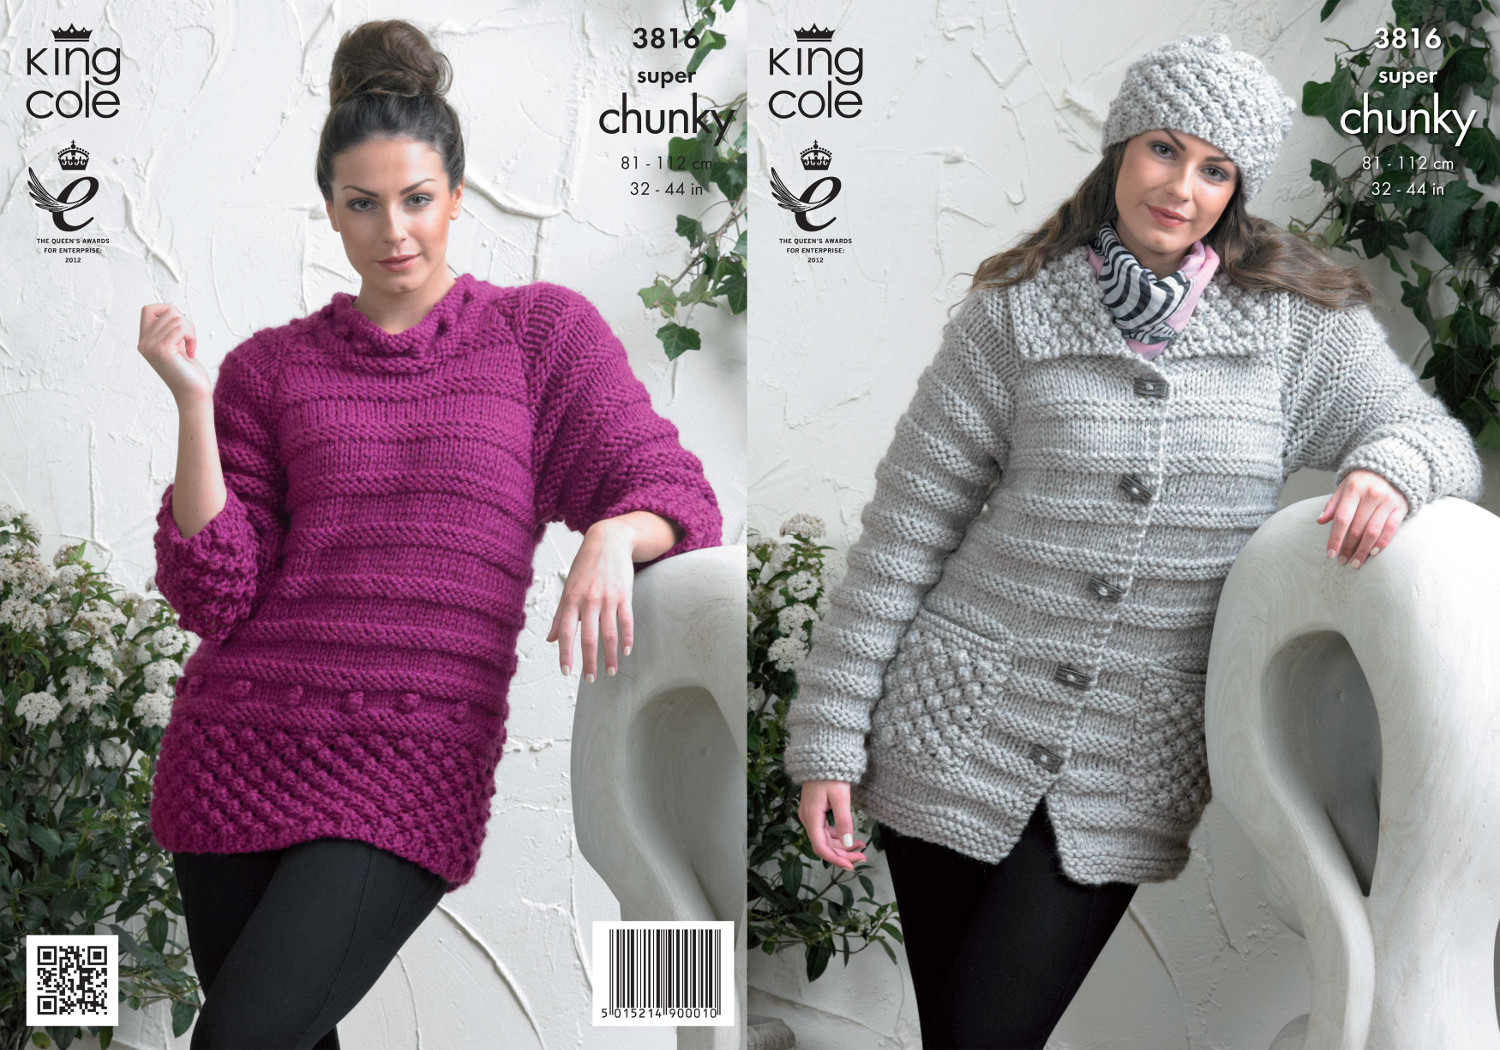 Knitting Jumper Pattern : King cole ladies knitting pattern womens super chunky jacket